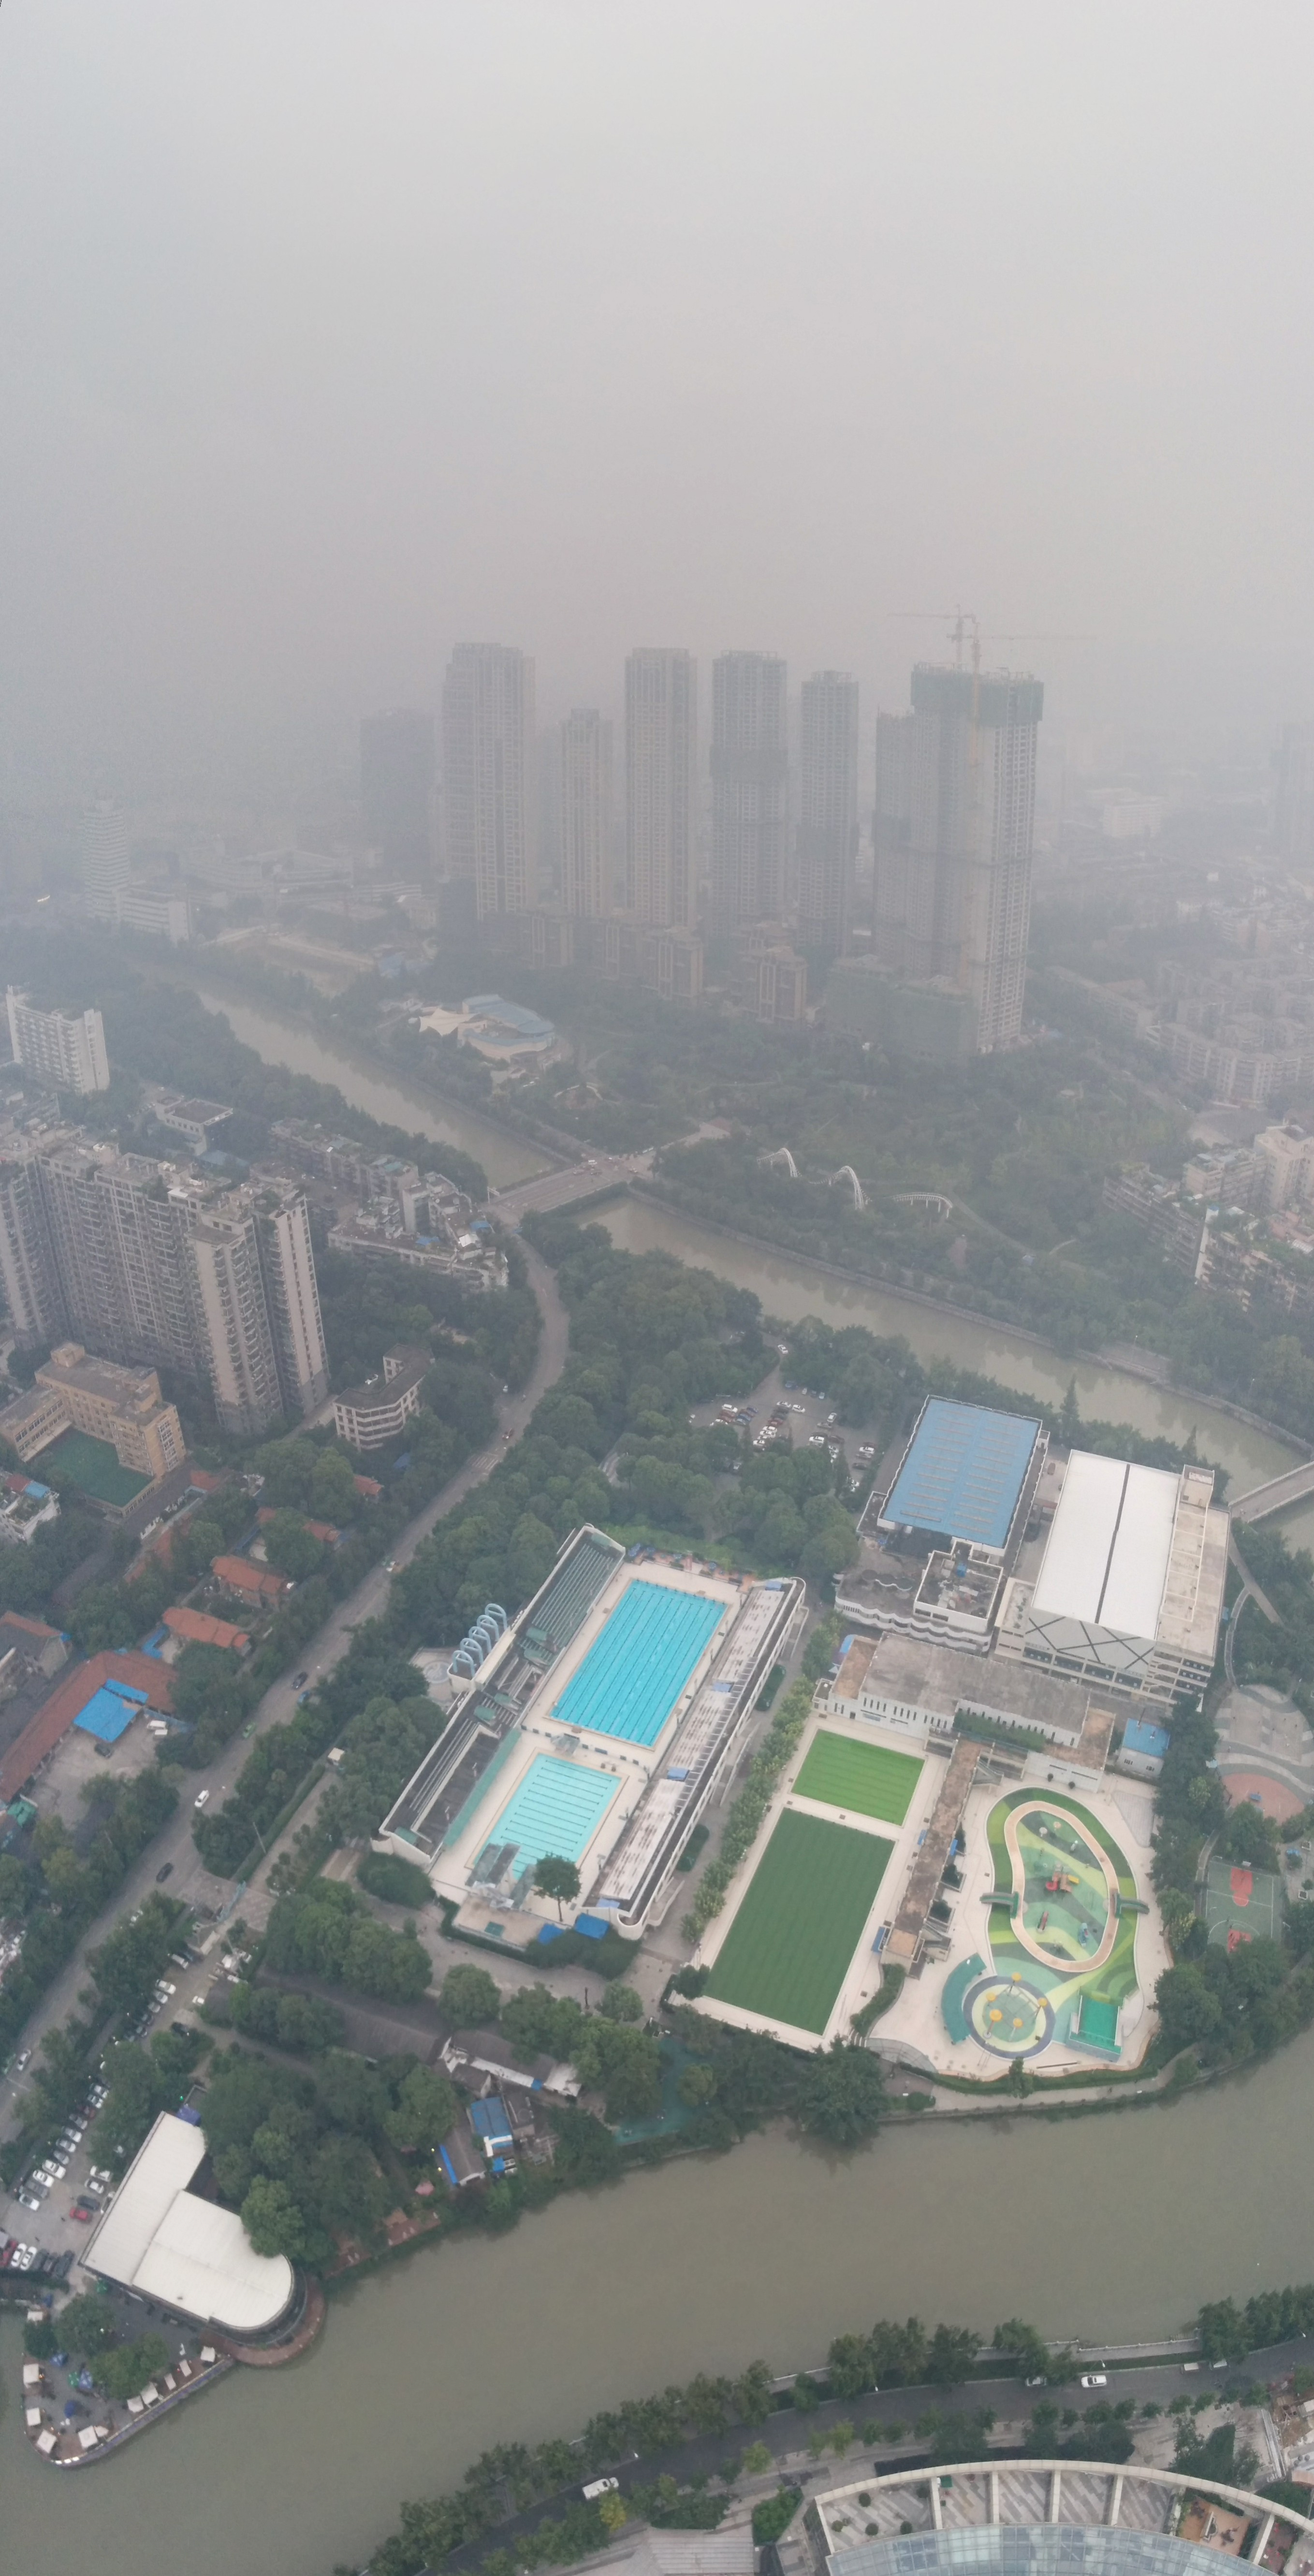 Looking down at the Mengzuiwan swimming pools on the north side of the Tower.